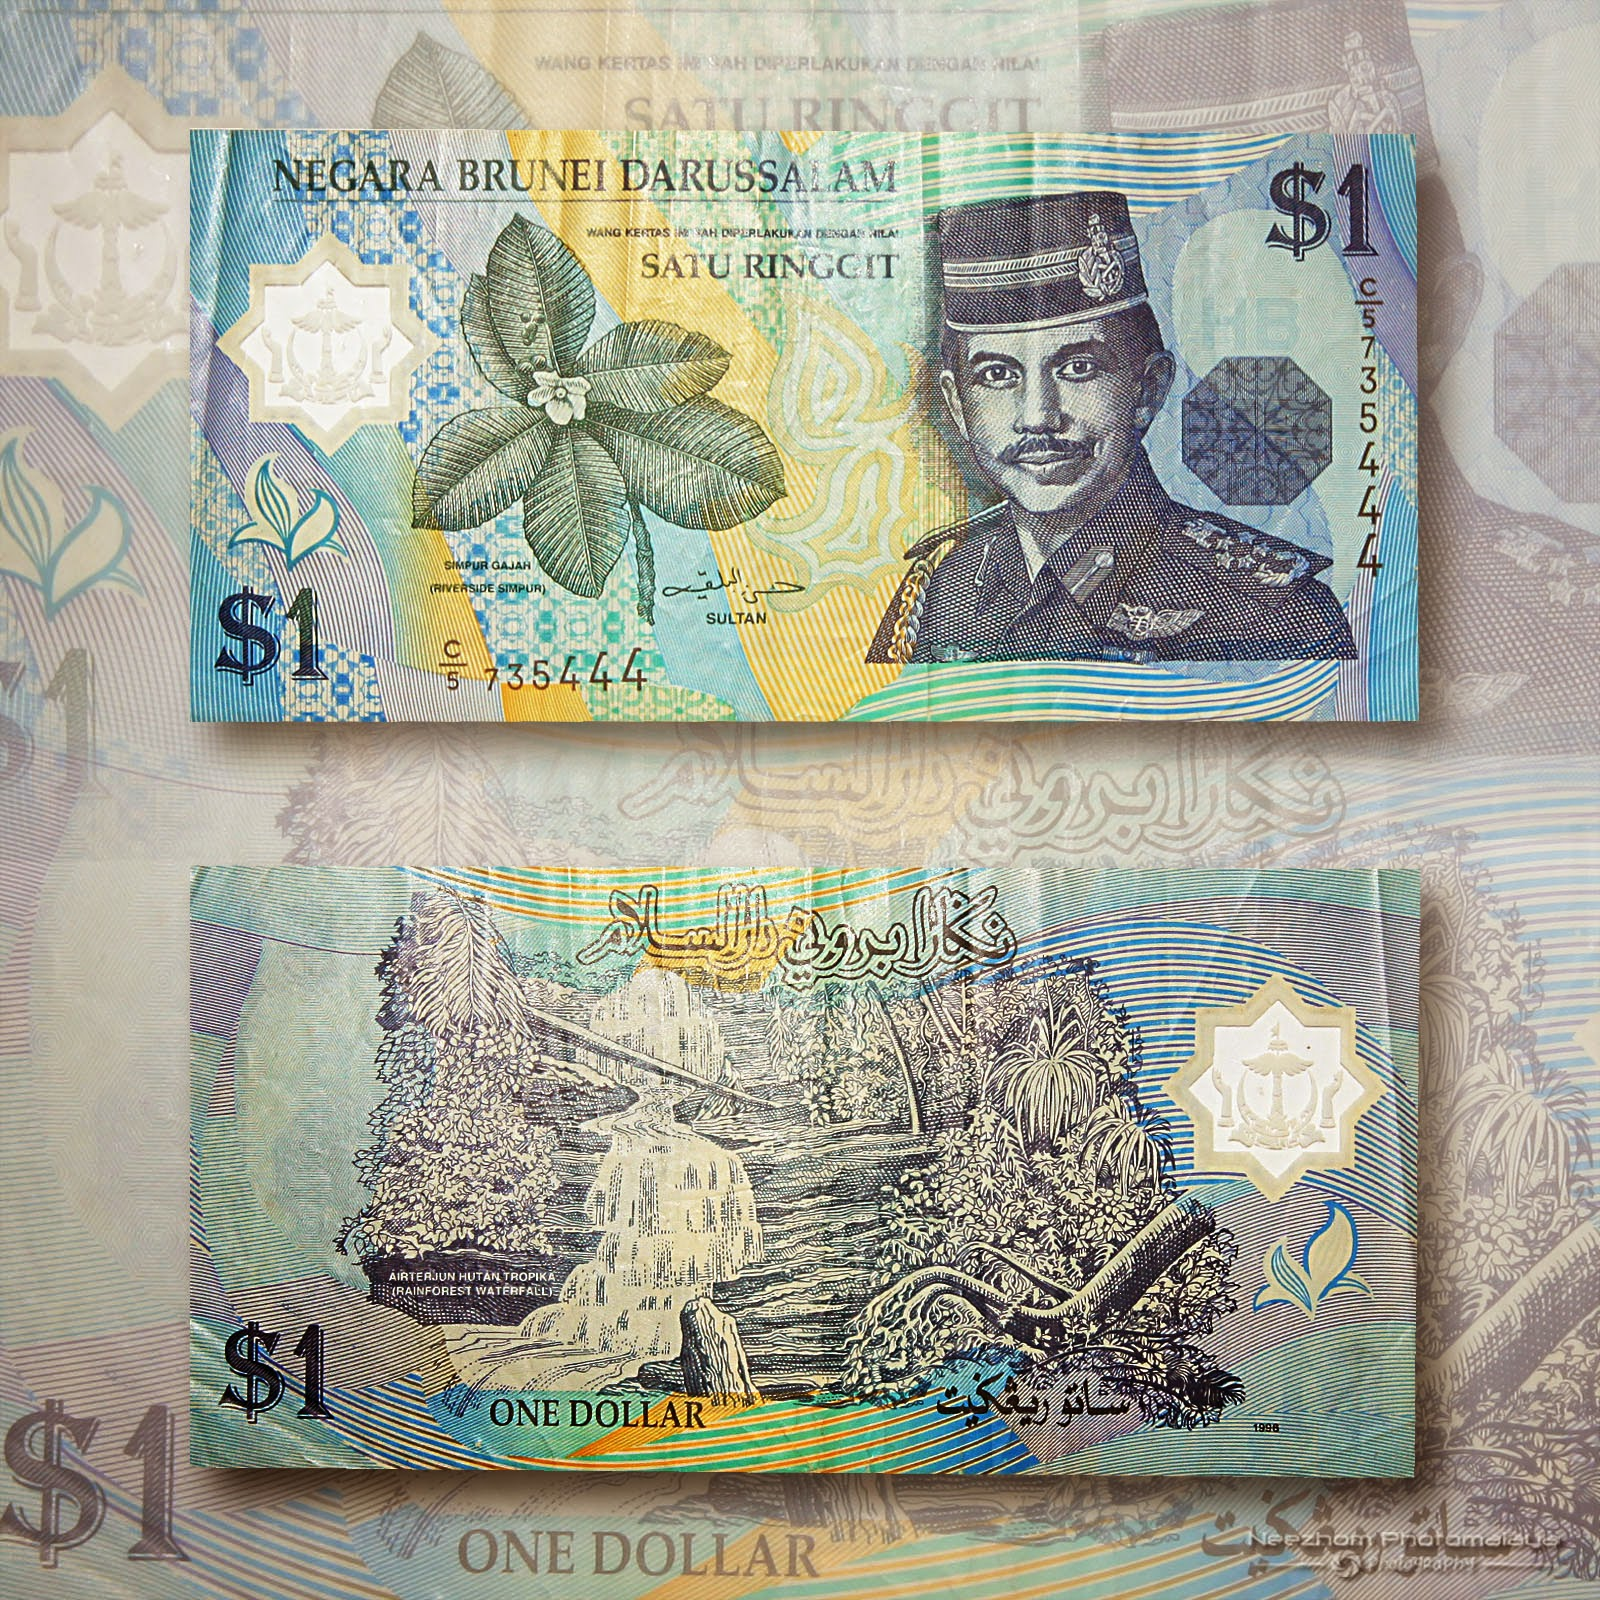 One Dollar Brunei 1996 polymer banknote